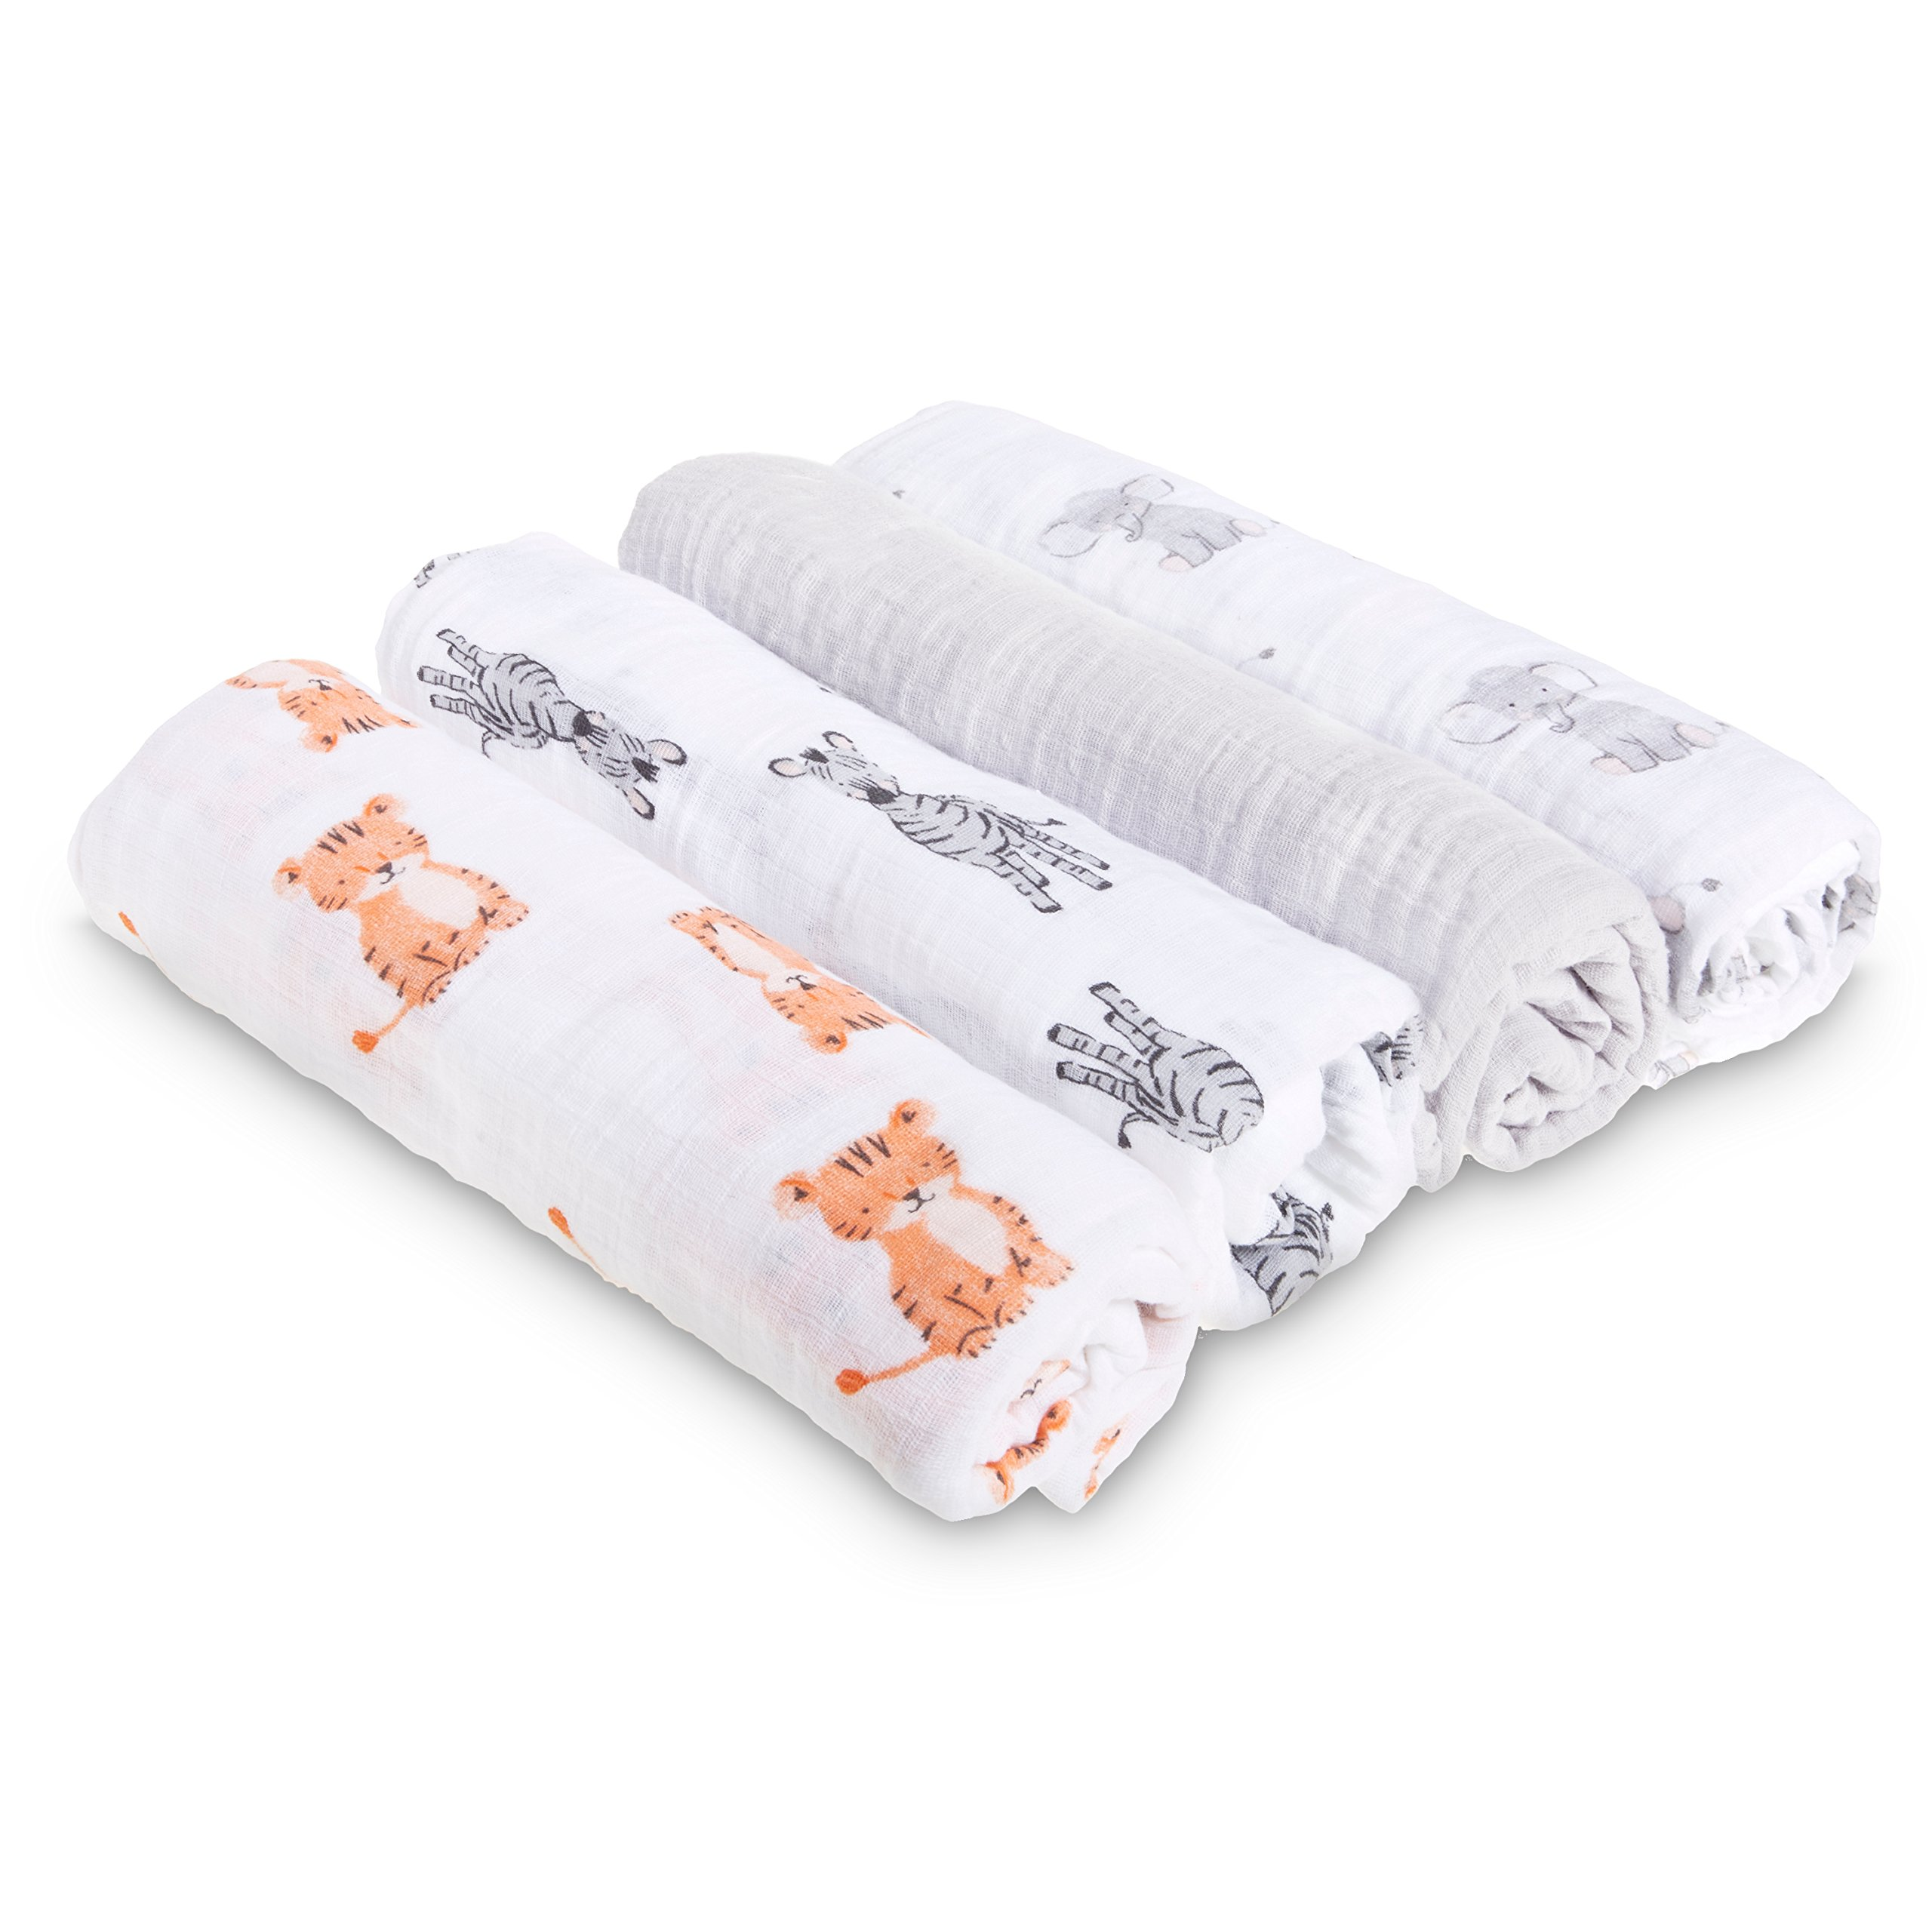 aden by aden + anais Swaddle Baby Blanket, 100% Cotton Muslin, 4 Pack, 44 X 44 inch, Safari Babes - Tiger / Zebra / Elephant